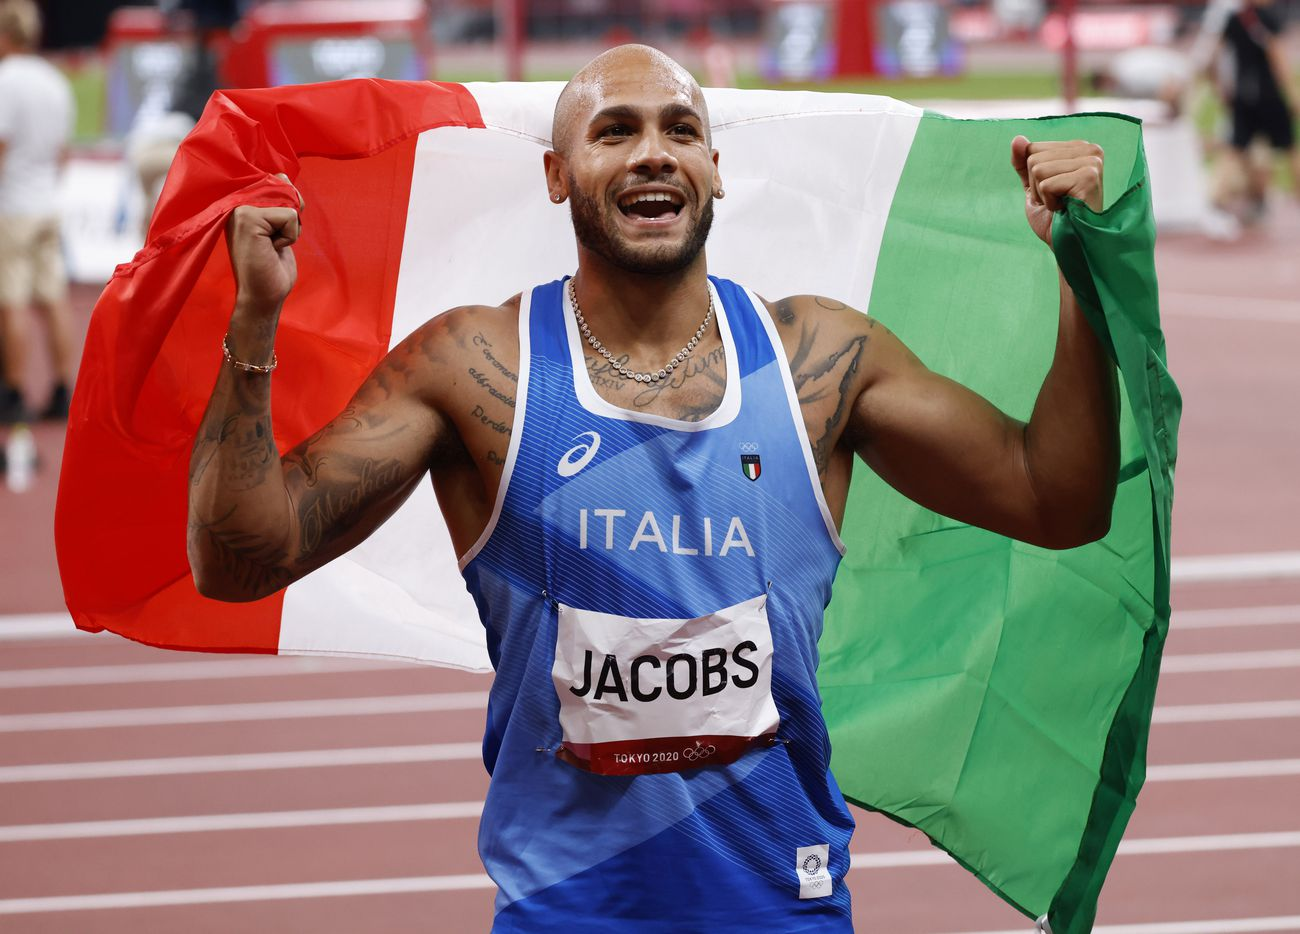 Italy's Lamont Marcell Jacobs celebrates after competing in the men's 100 meter final during the postponed 2020 Tokyo Olympics at Olympic Stadium, on Sunday, August 1, 2021, in Tokyo, Japan. Jacobs took first for gold with time of 9.80 seconds. (Vernon Bryant/The Dallas Morning News)